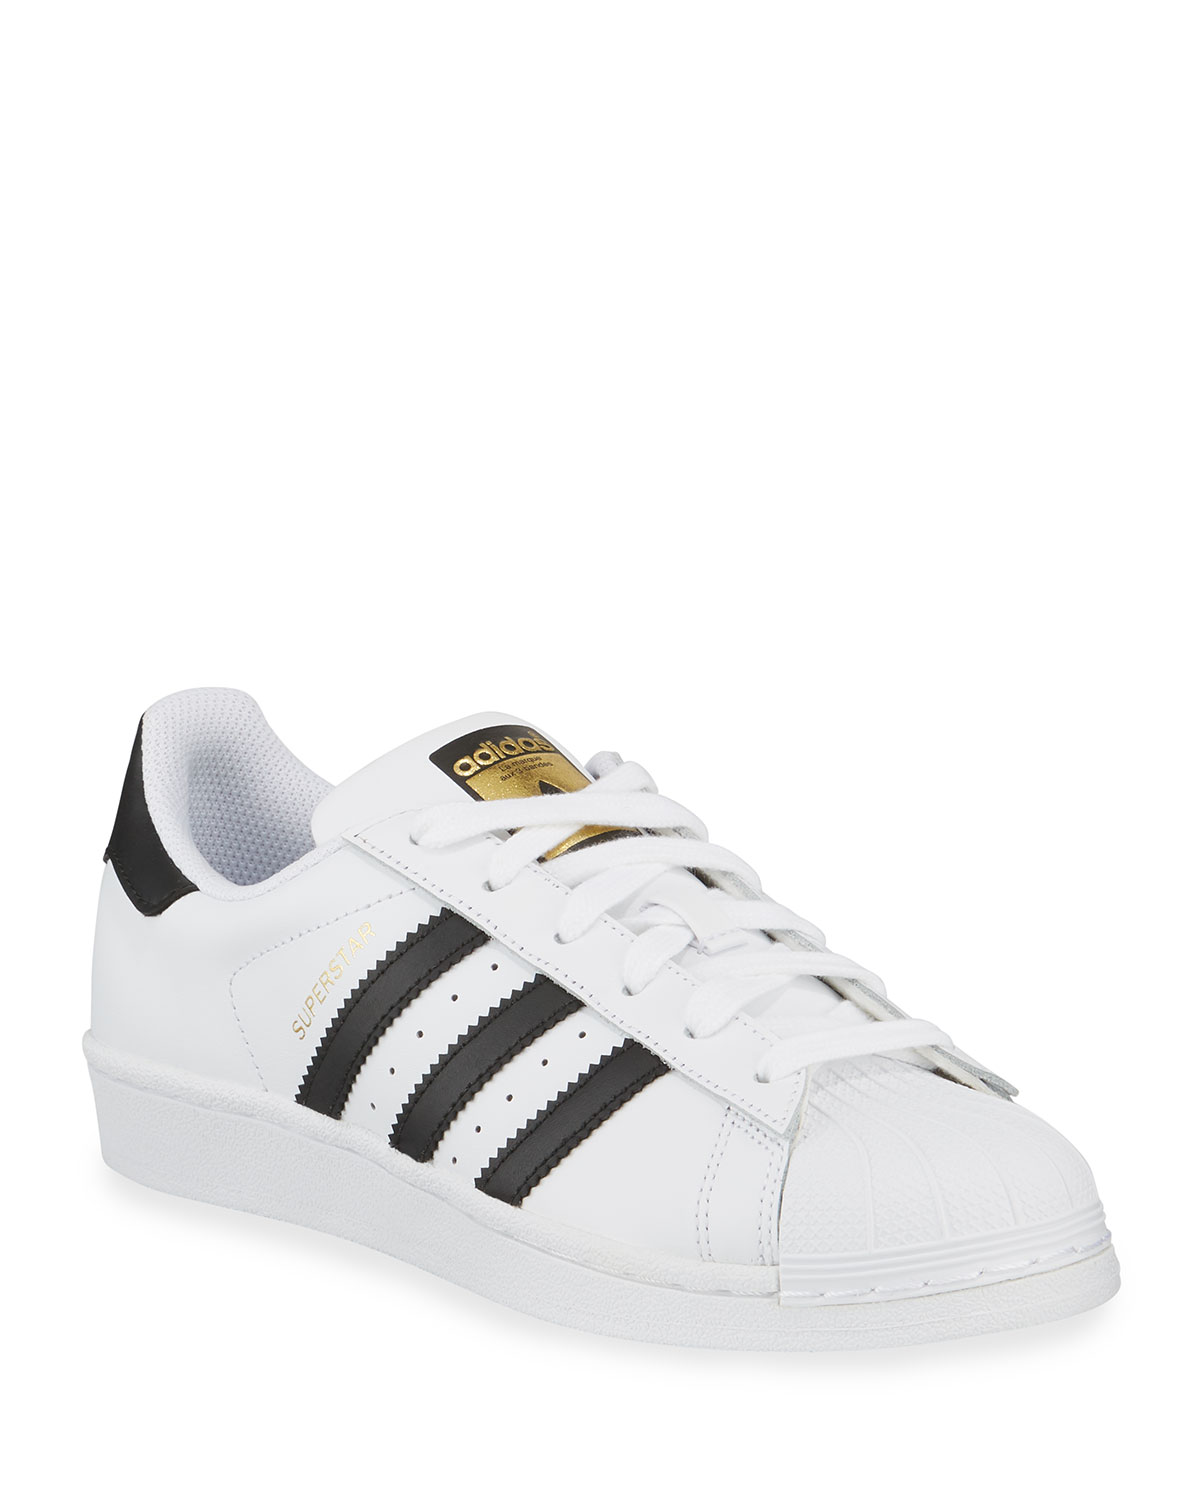 best sneakers 042c4 2f5bc Superstar Classic Sneakers, Black/White